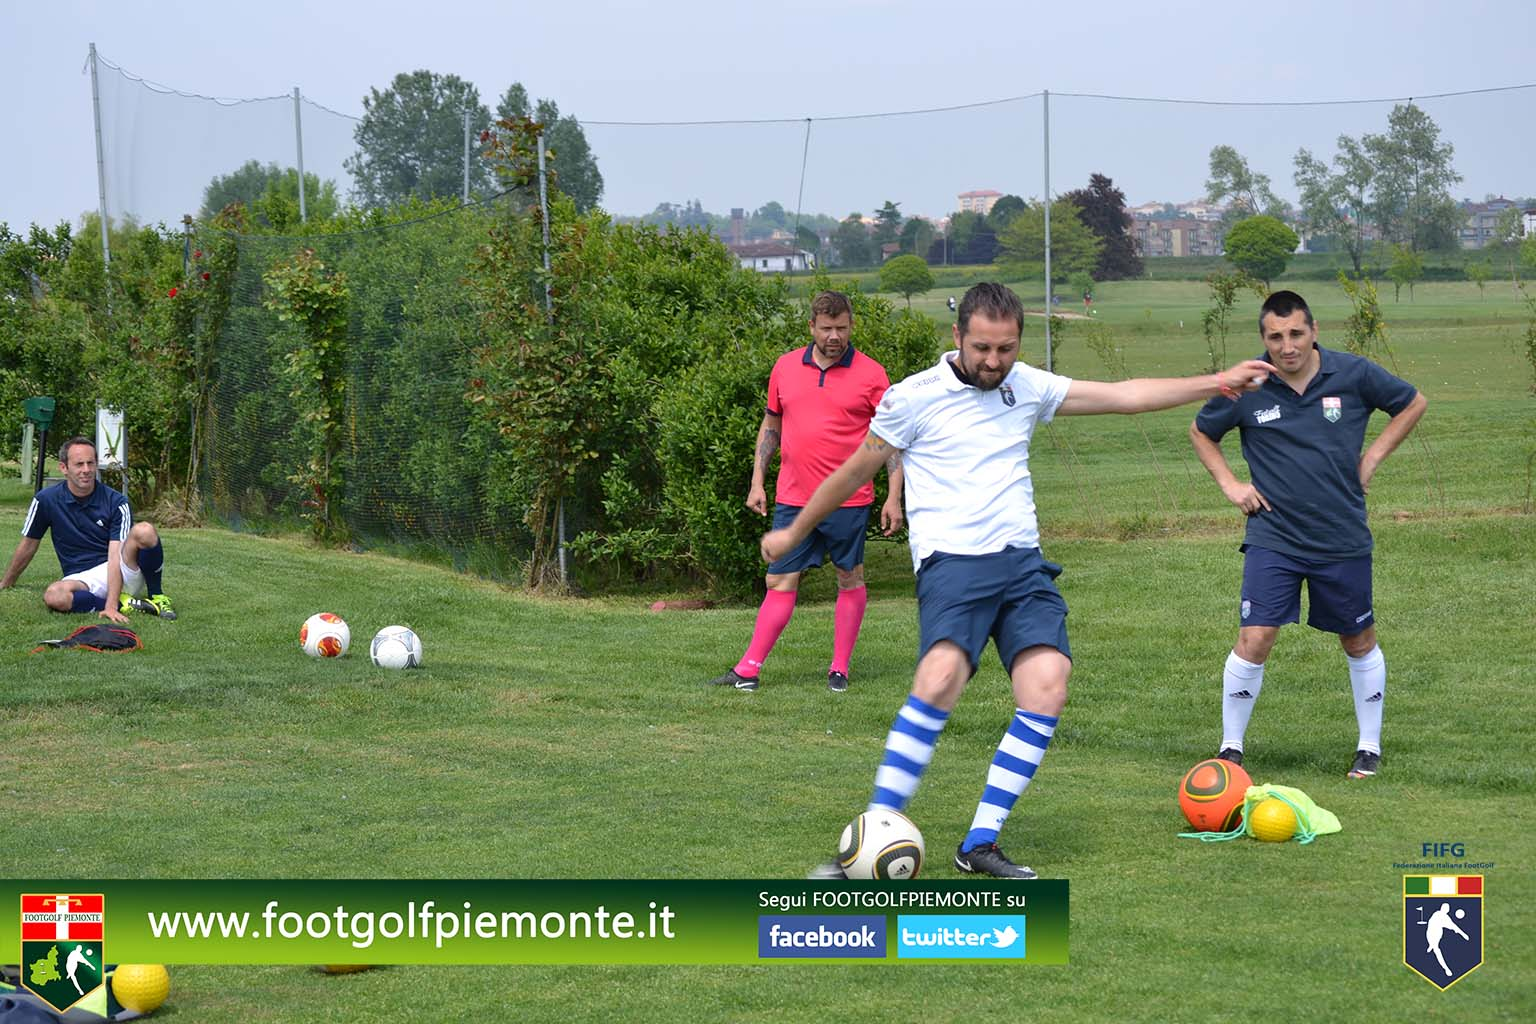 FOTO 9 Regions' Cup Footgolf Piemonte 2016 Golf Città di Asti (At) 30apr16-85